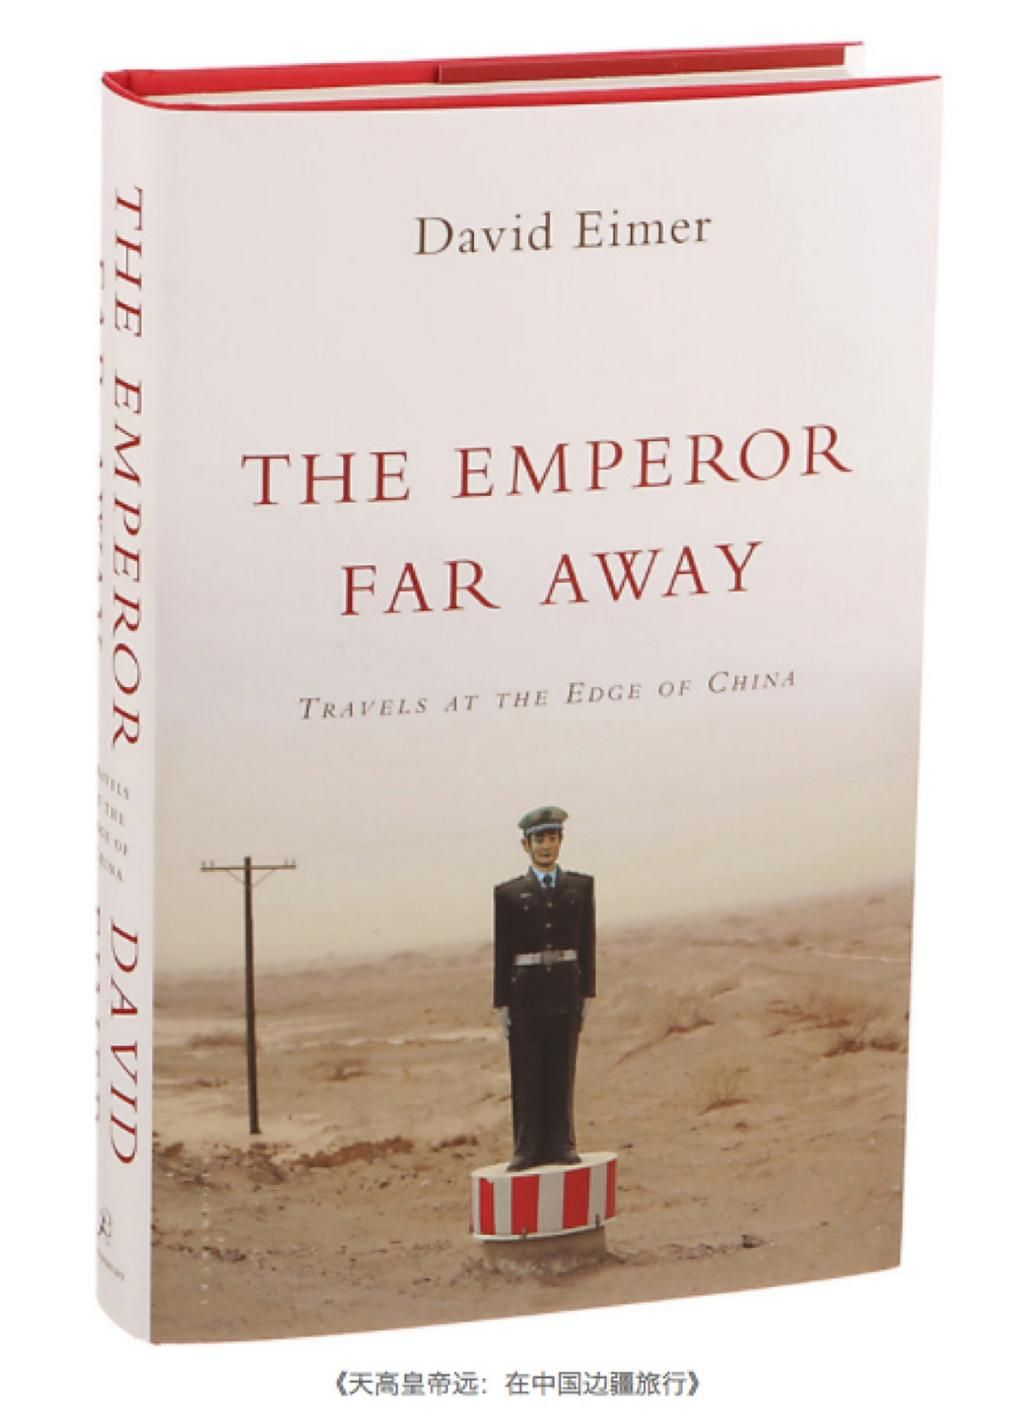 'The Emperor Far Away: Travels at the Edge of China,' by David Eimer